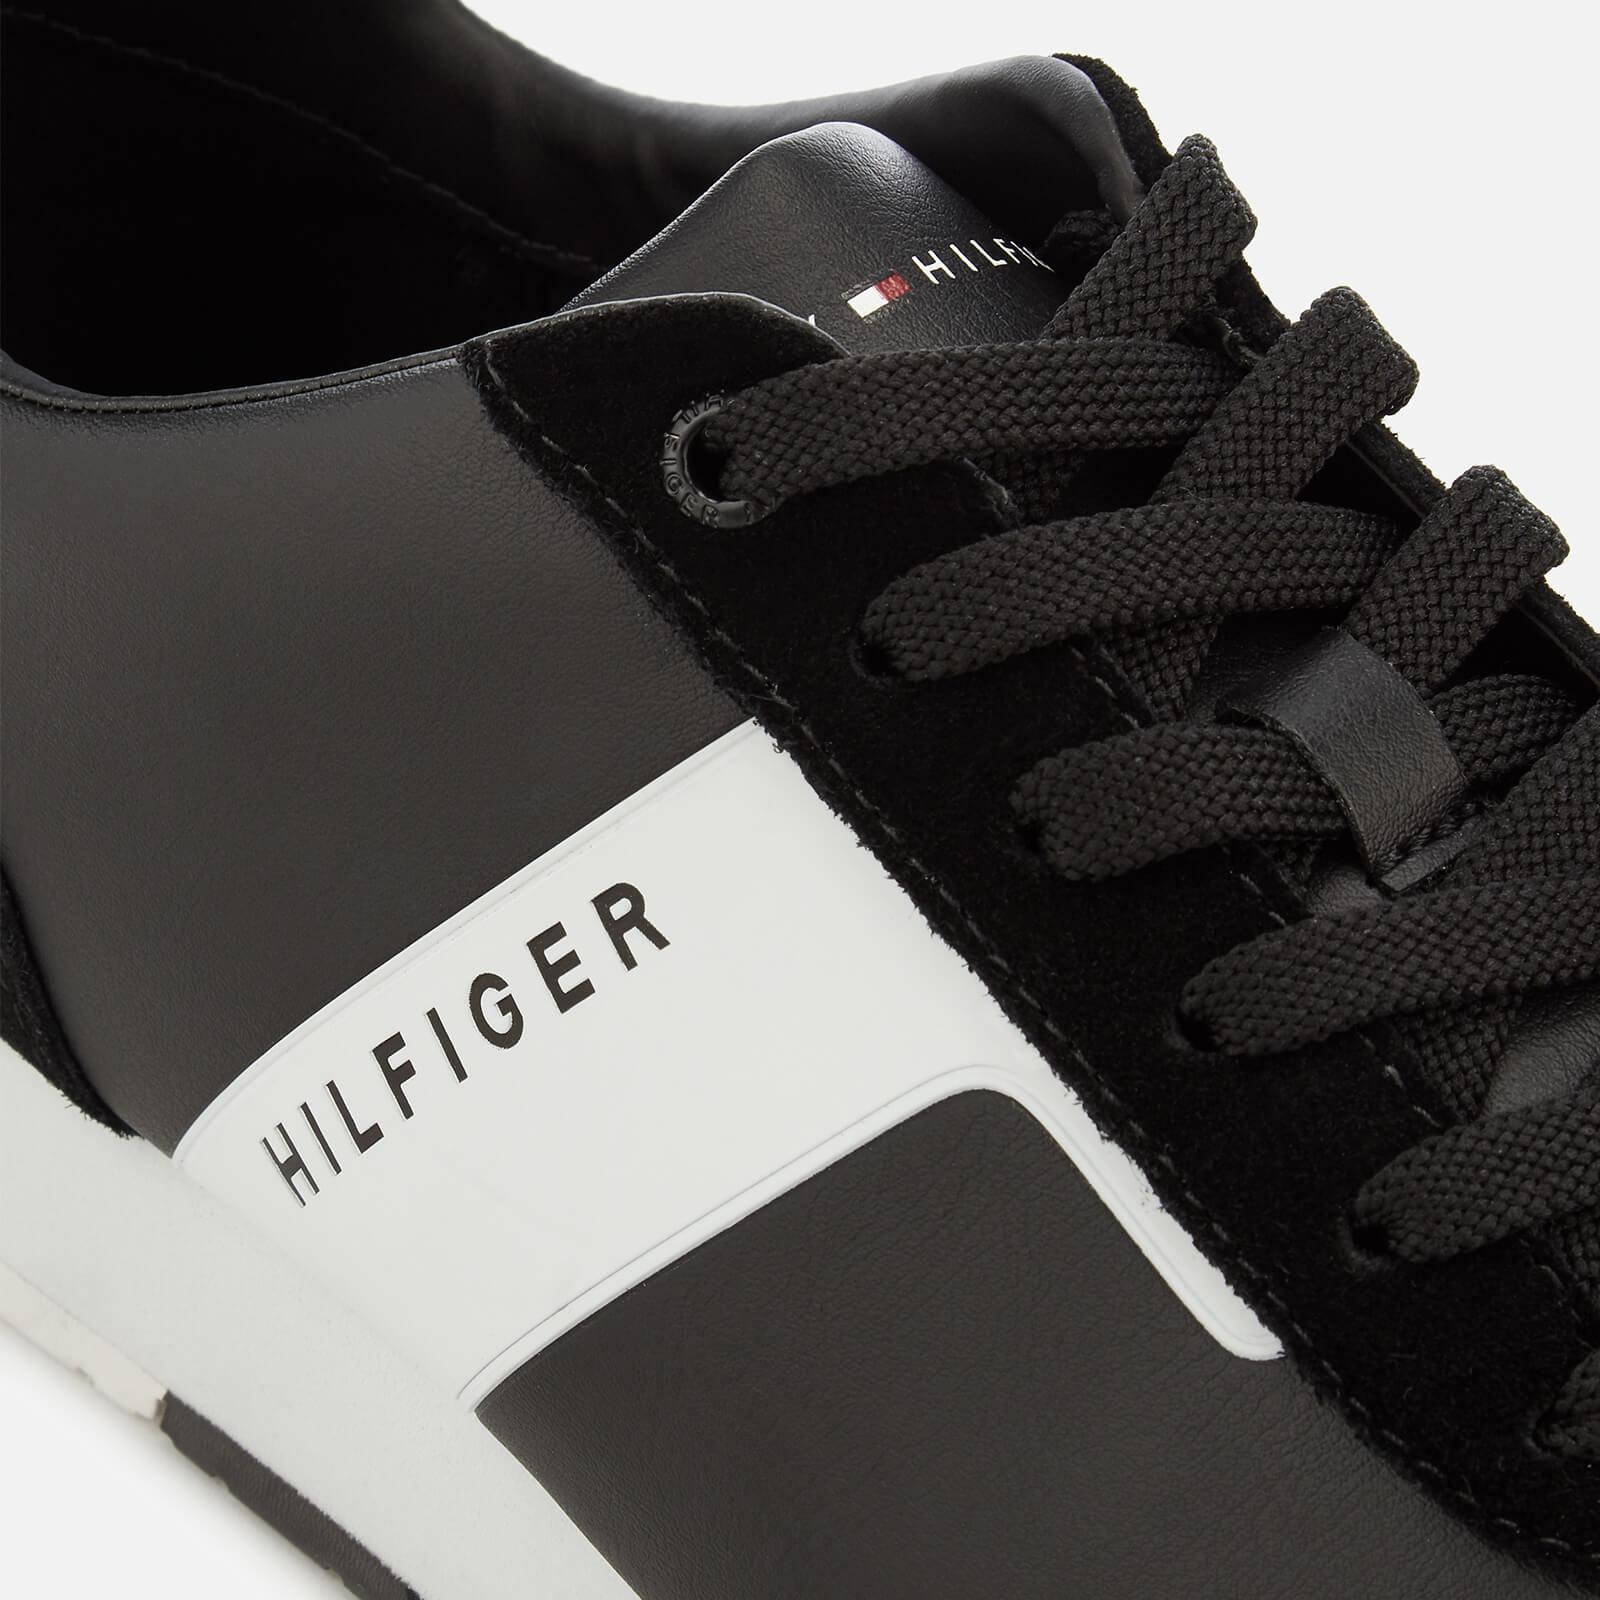 77a66c388 ... Leather Material Mix Runner Trainers for Men - Lyst. View fullscreen